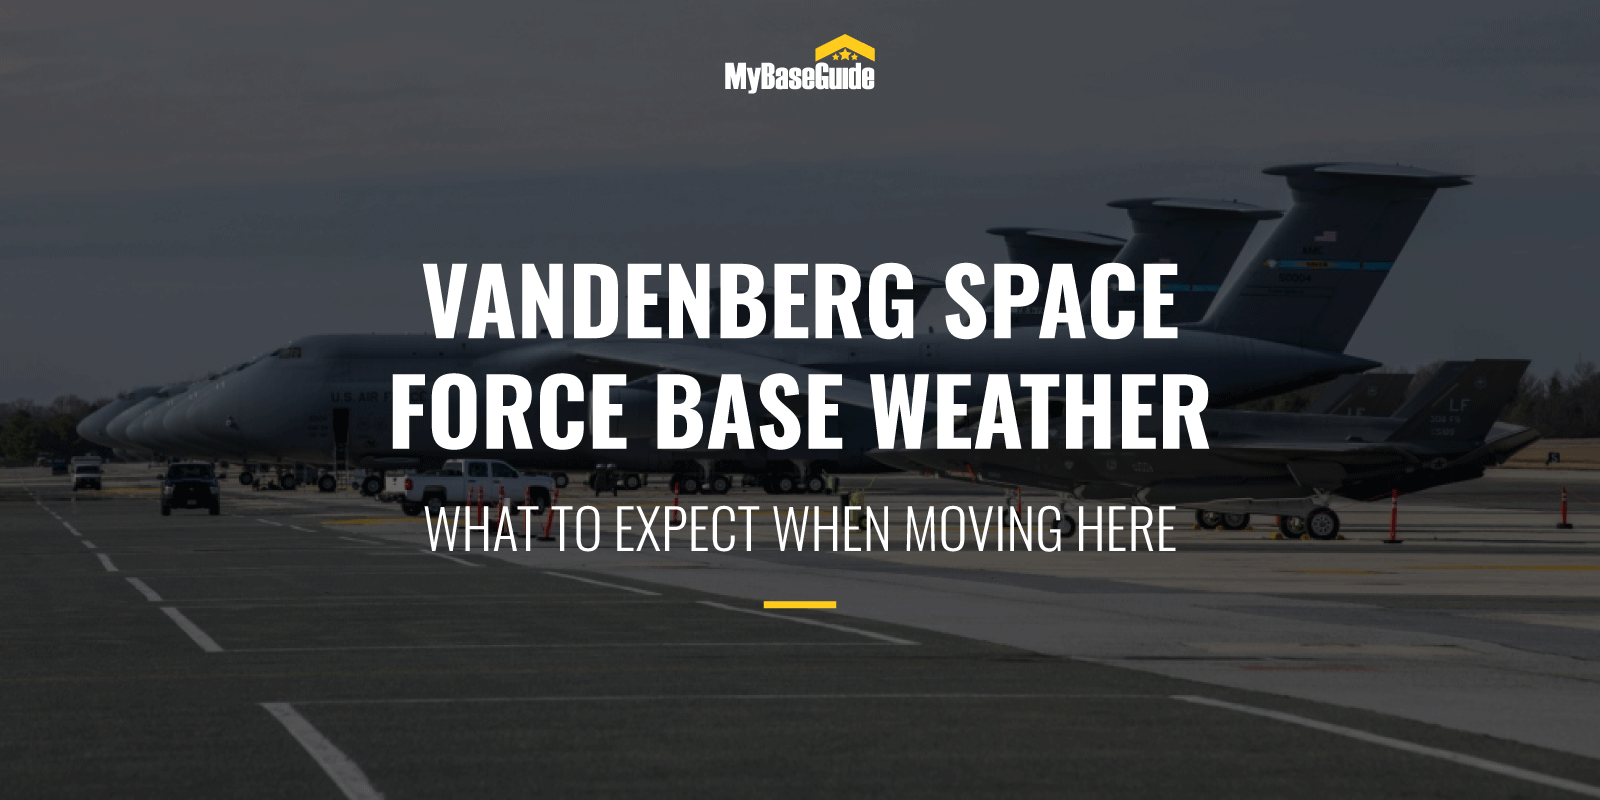 Vandenberg AFB Weather (Now Vandenberg Space Force Base)